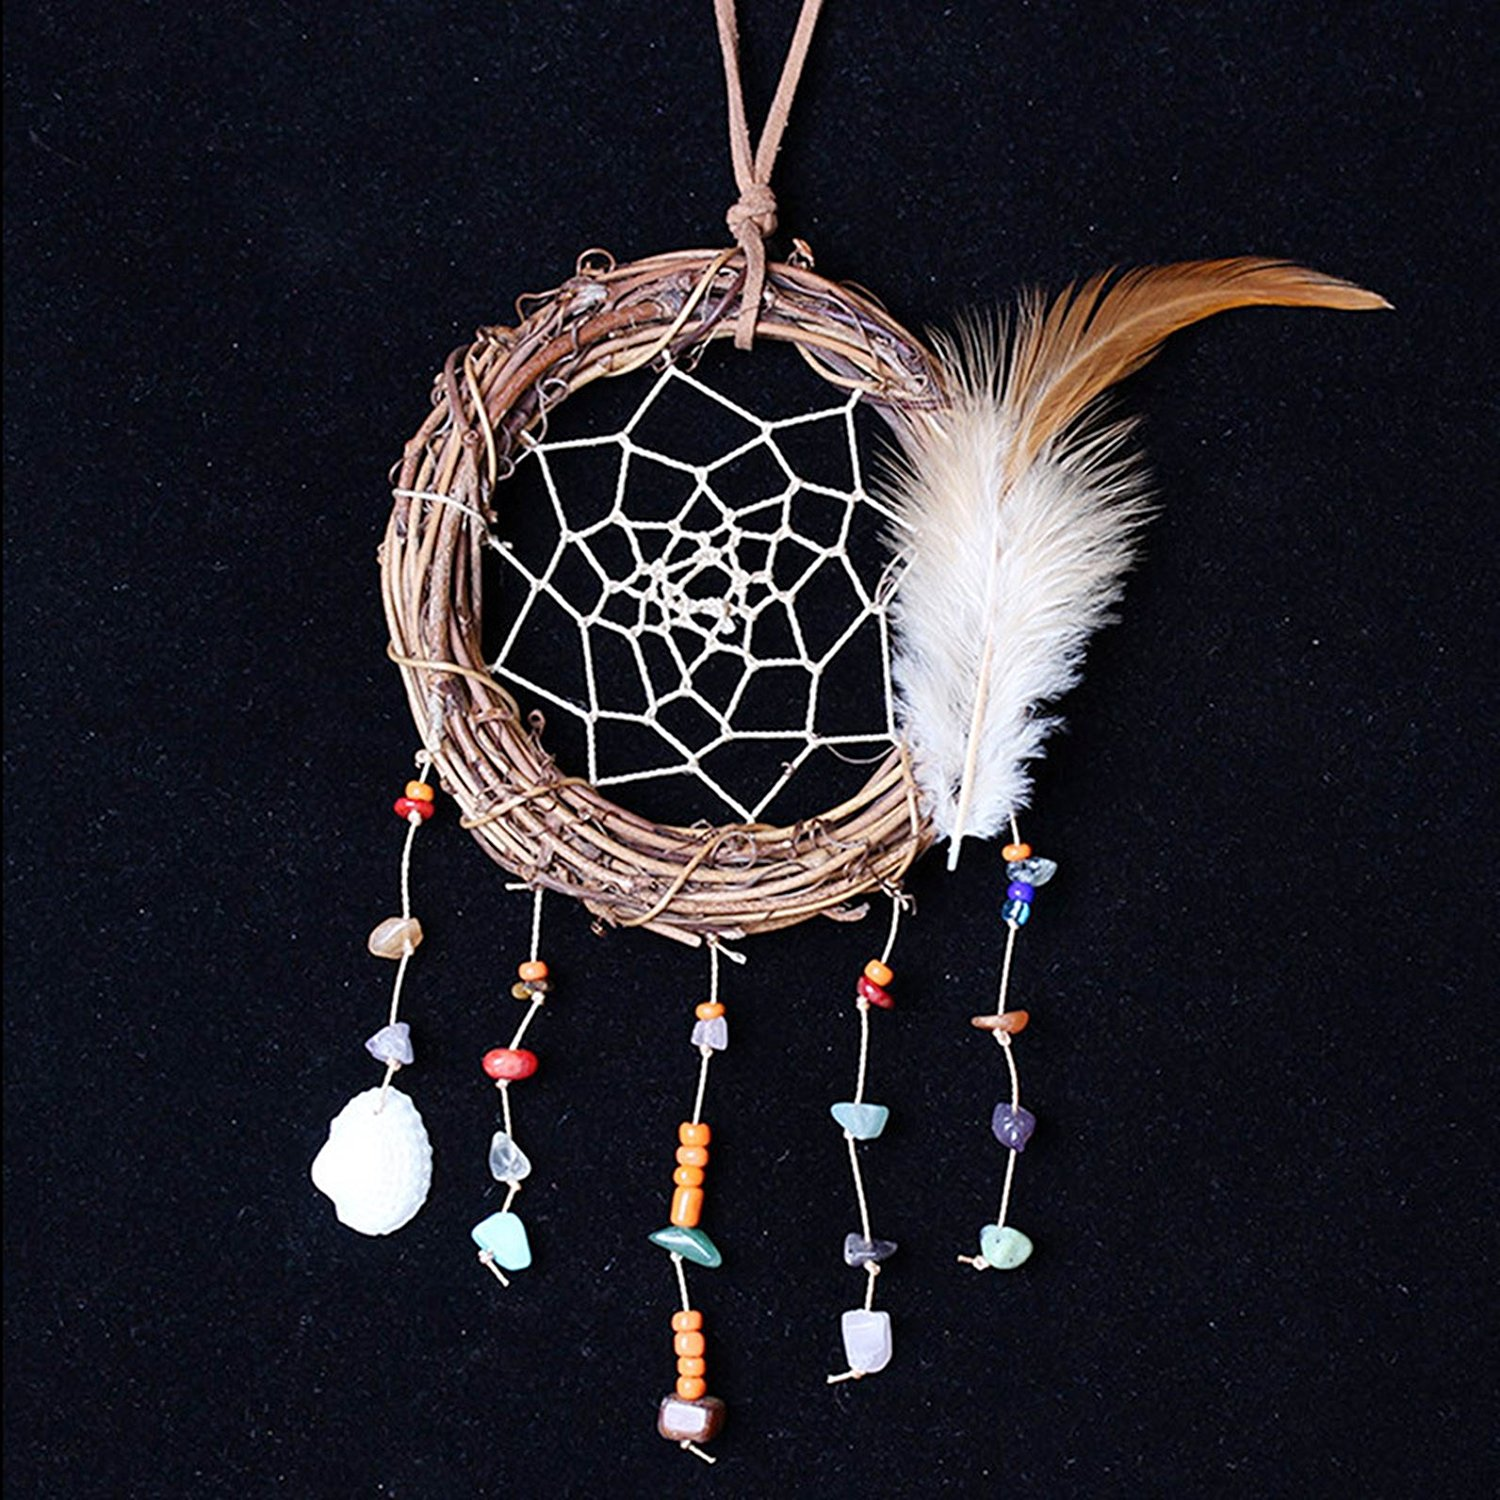 1 Pc Antique Colorful Feathers Stone Dream Catcher Ornament Gift Mini Arts Craft Rainbow Owl Hanging Nursery Bedding Room Superior Popular Dreamcatchers Girls Bedroom Yin Yang Car Wall Catchers Kit